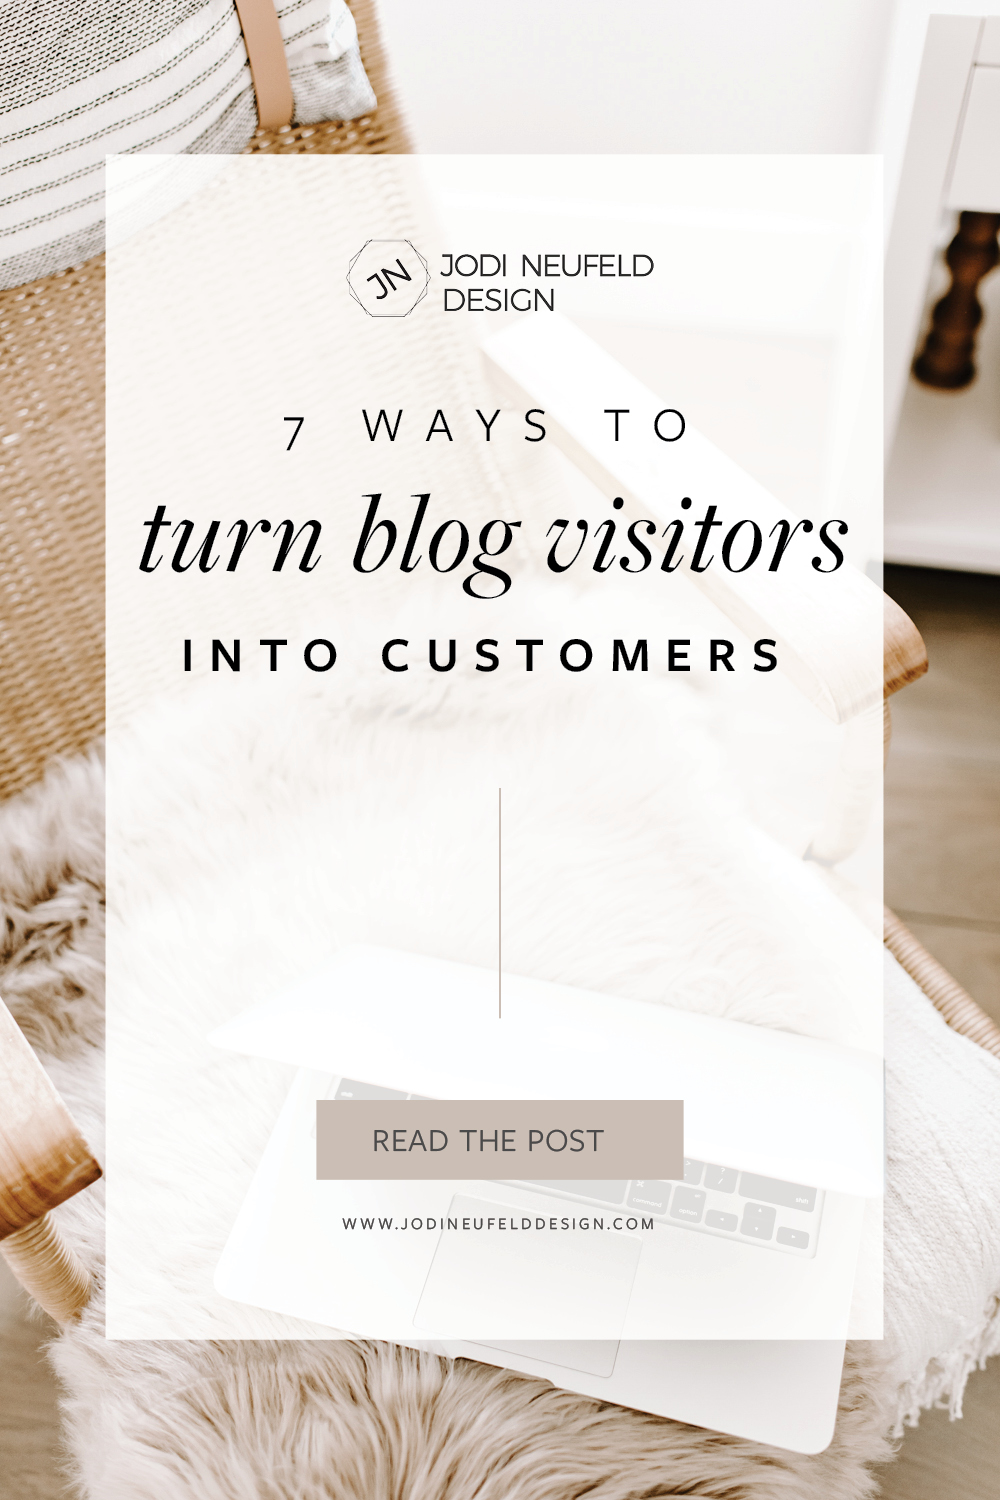 7 ways to turn blog visitors into customers by Jodi Neufeld Design